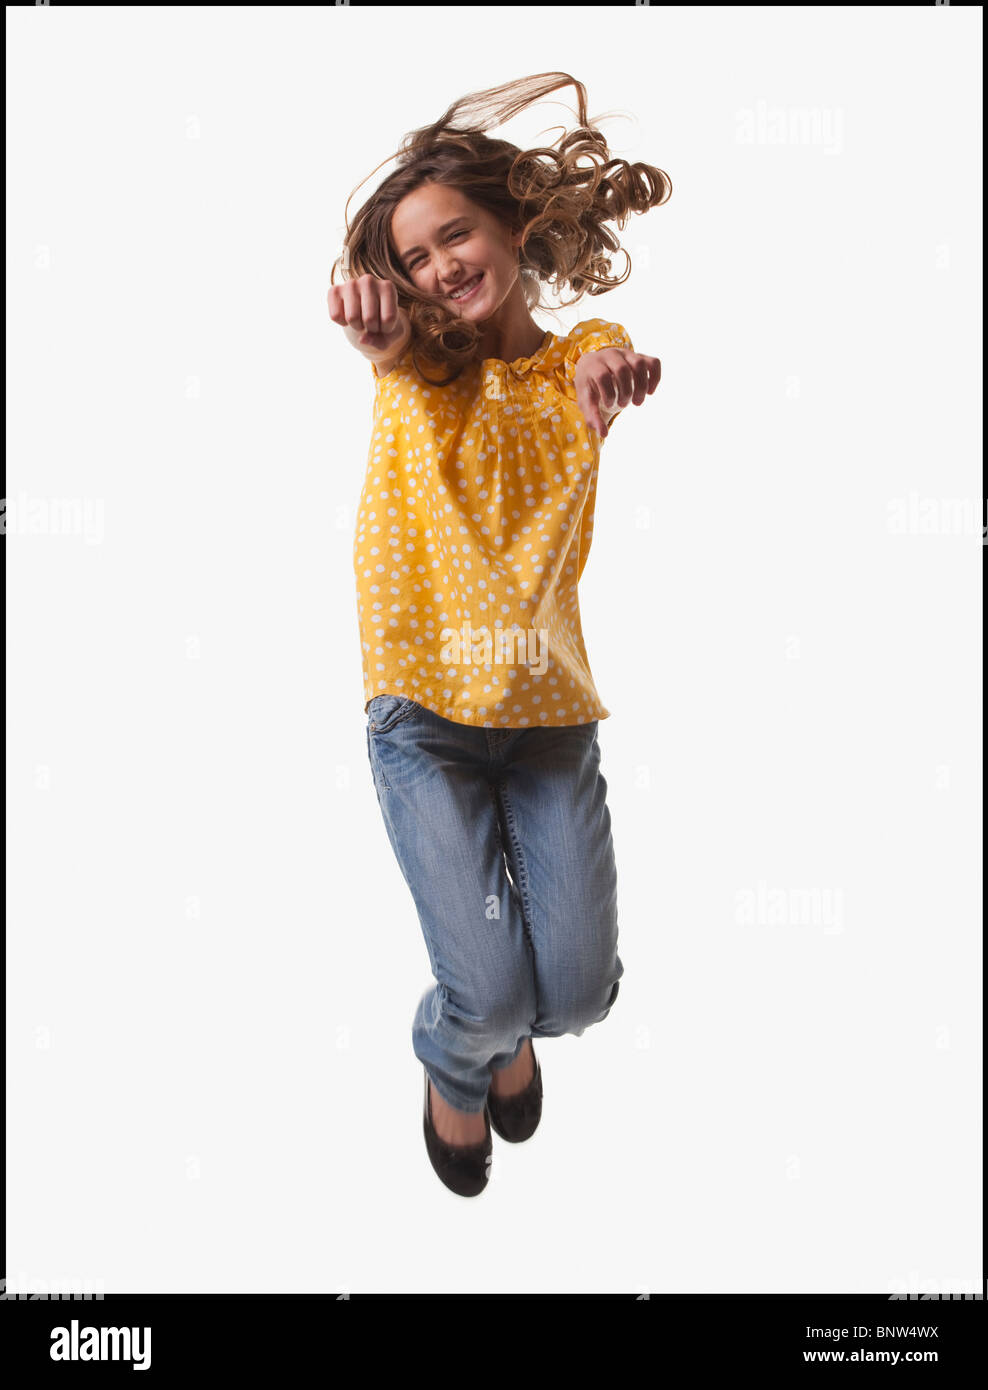 excited teenage girl jumping for joy stock photo 30670806 alamy